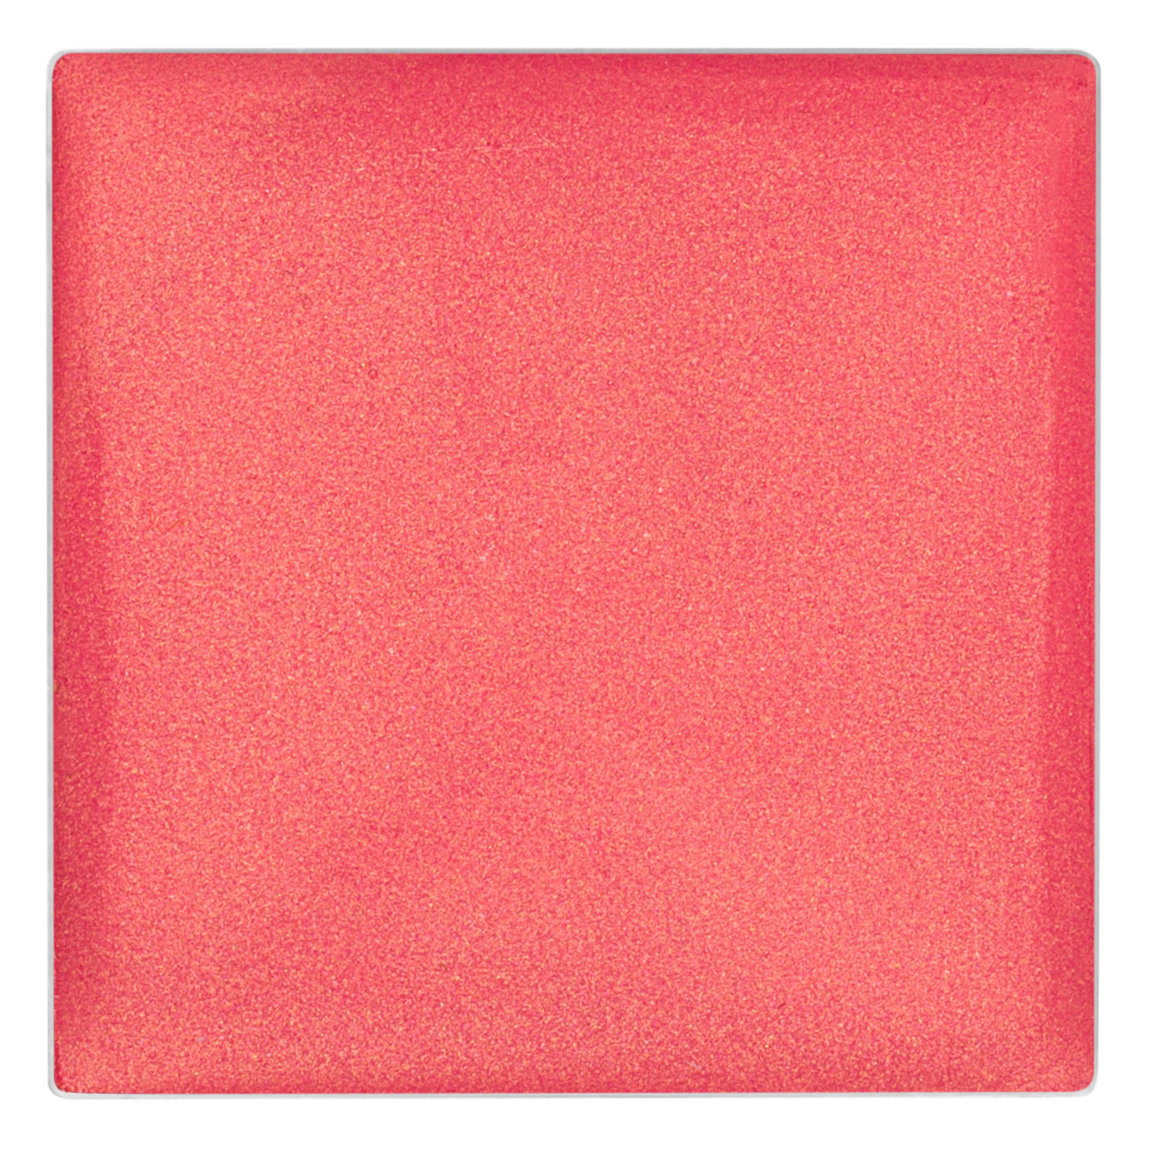 Kjaer Weis Cream Blush Refill Blushing alternative view 1 - product swatch.